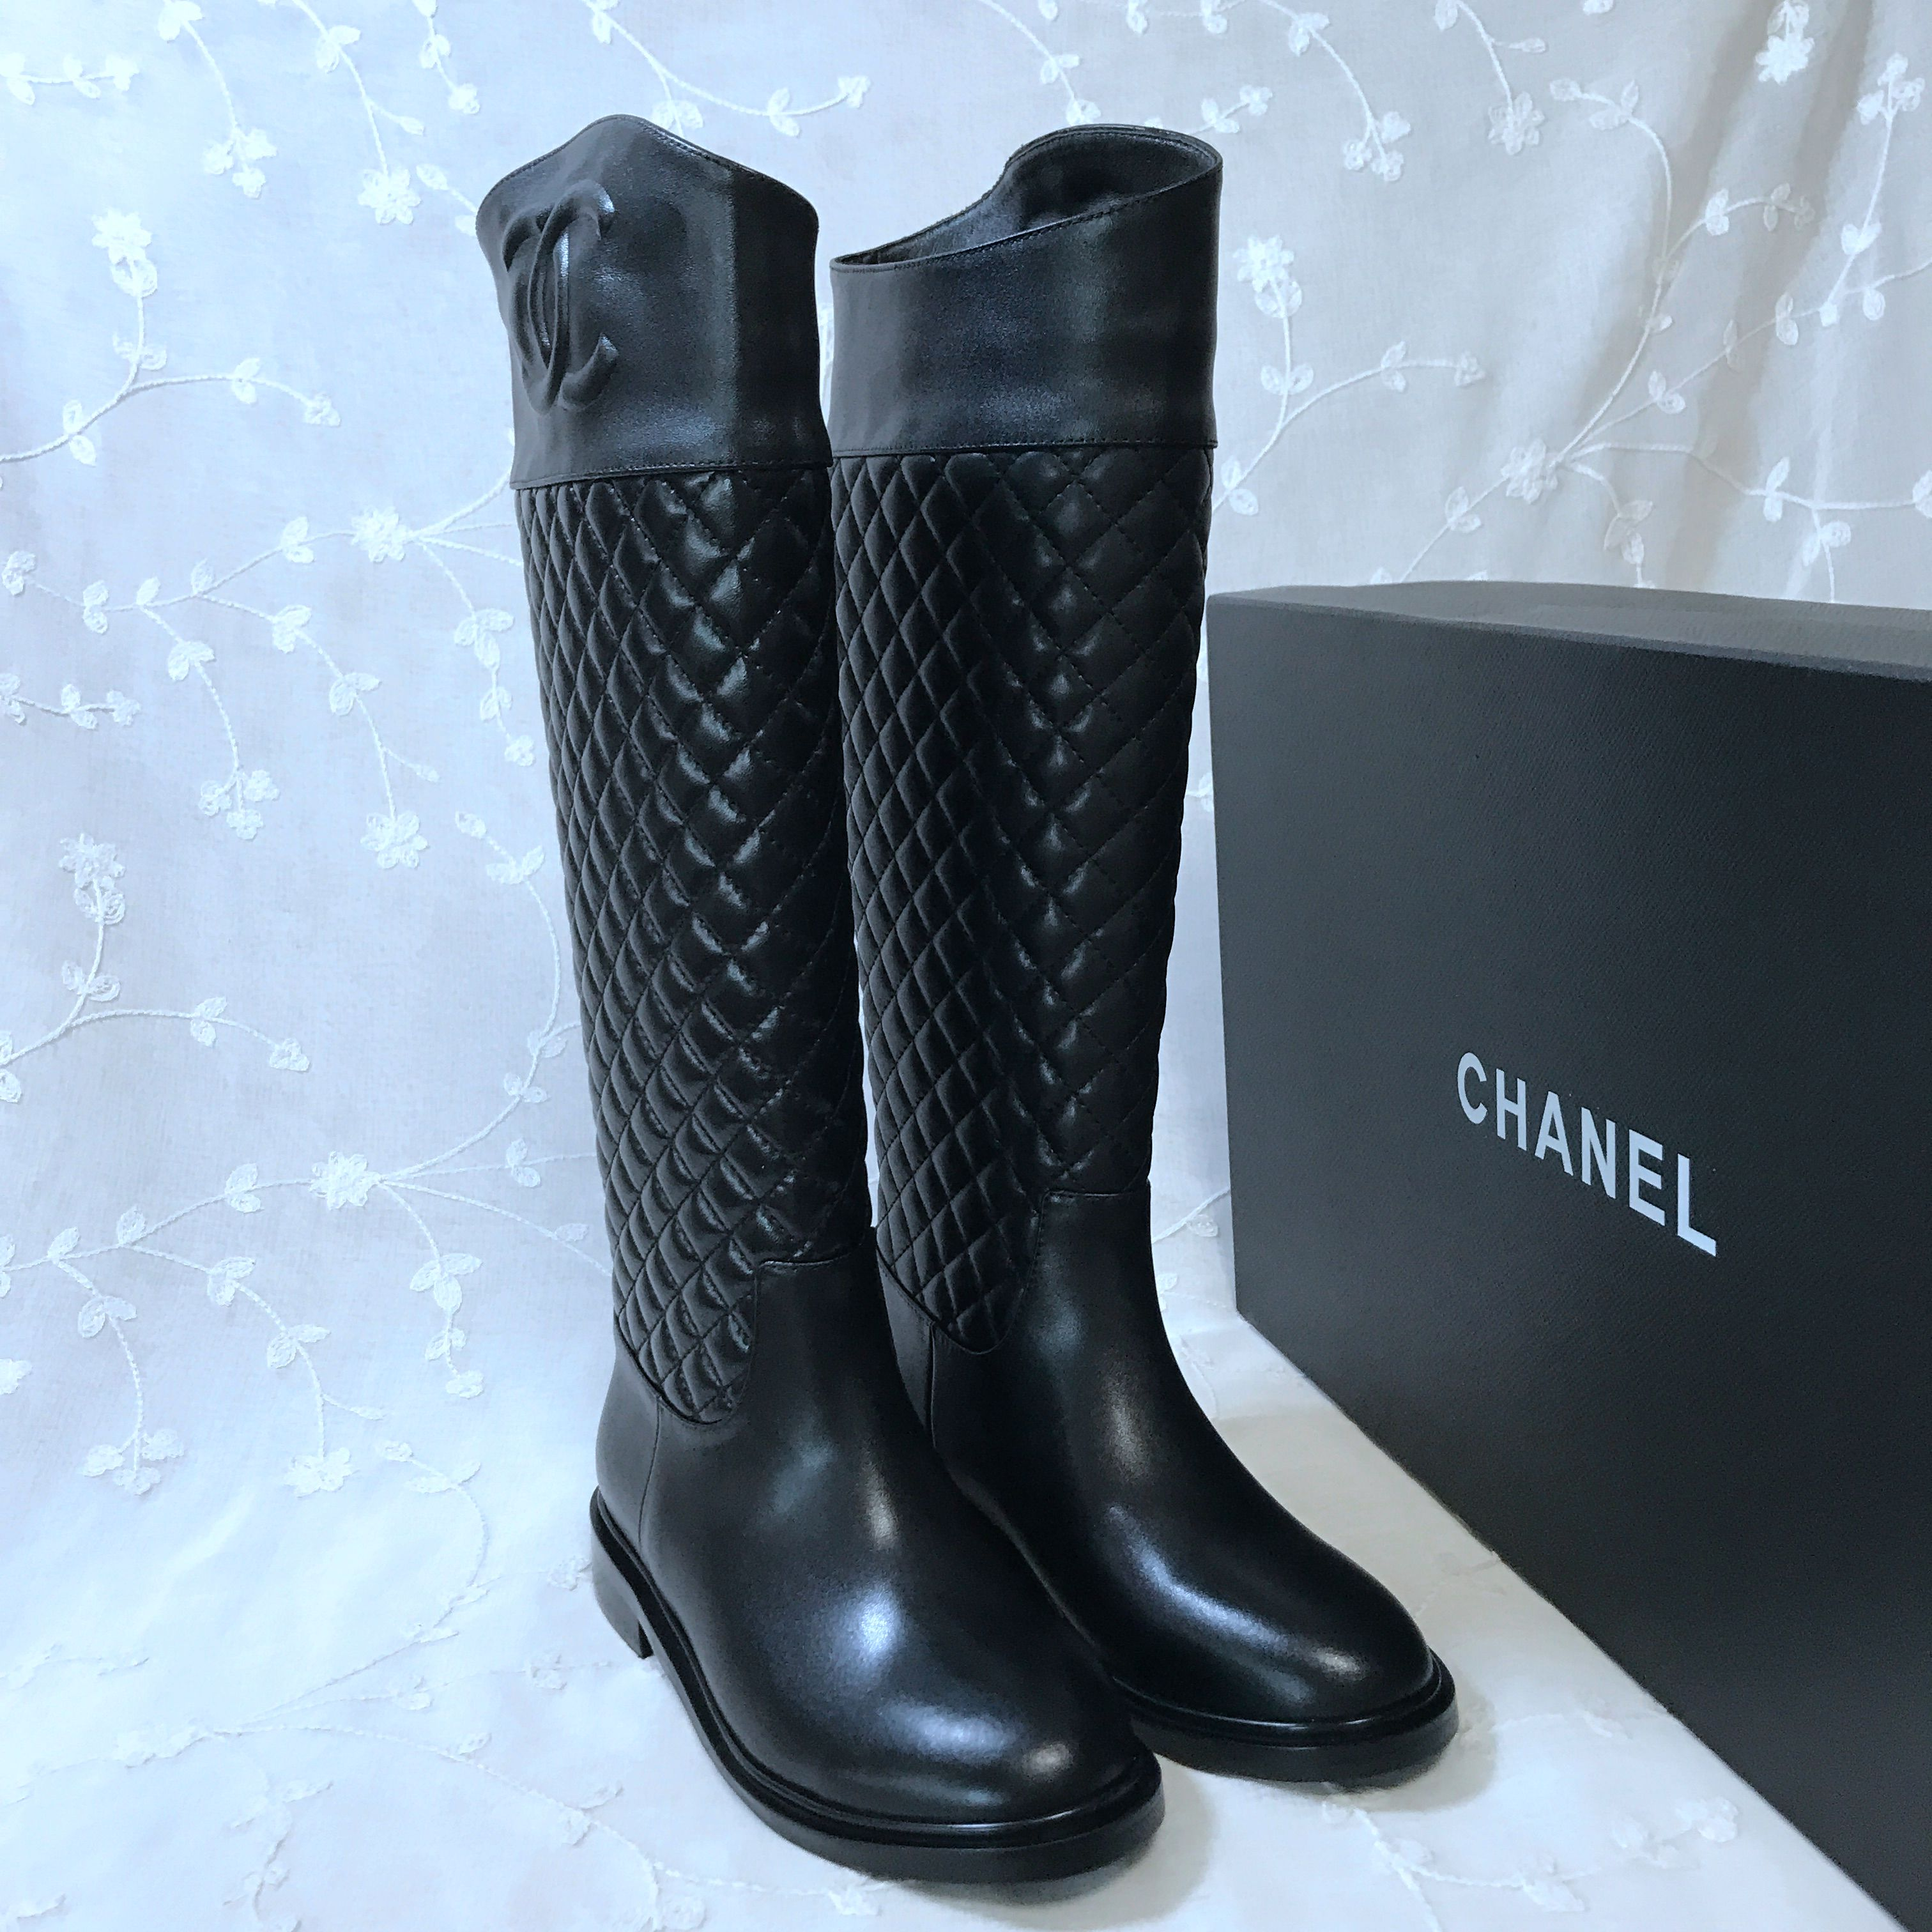 Chanel Boots 1321900